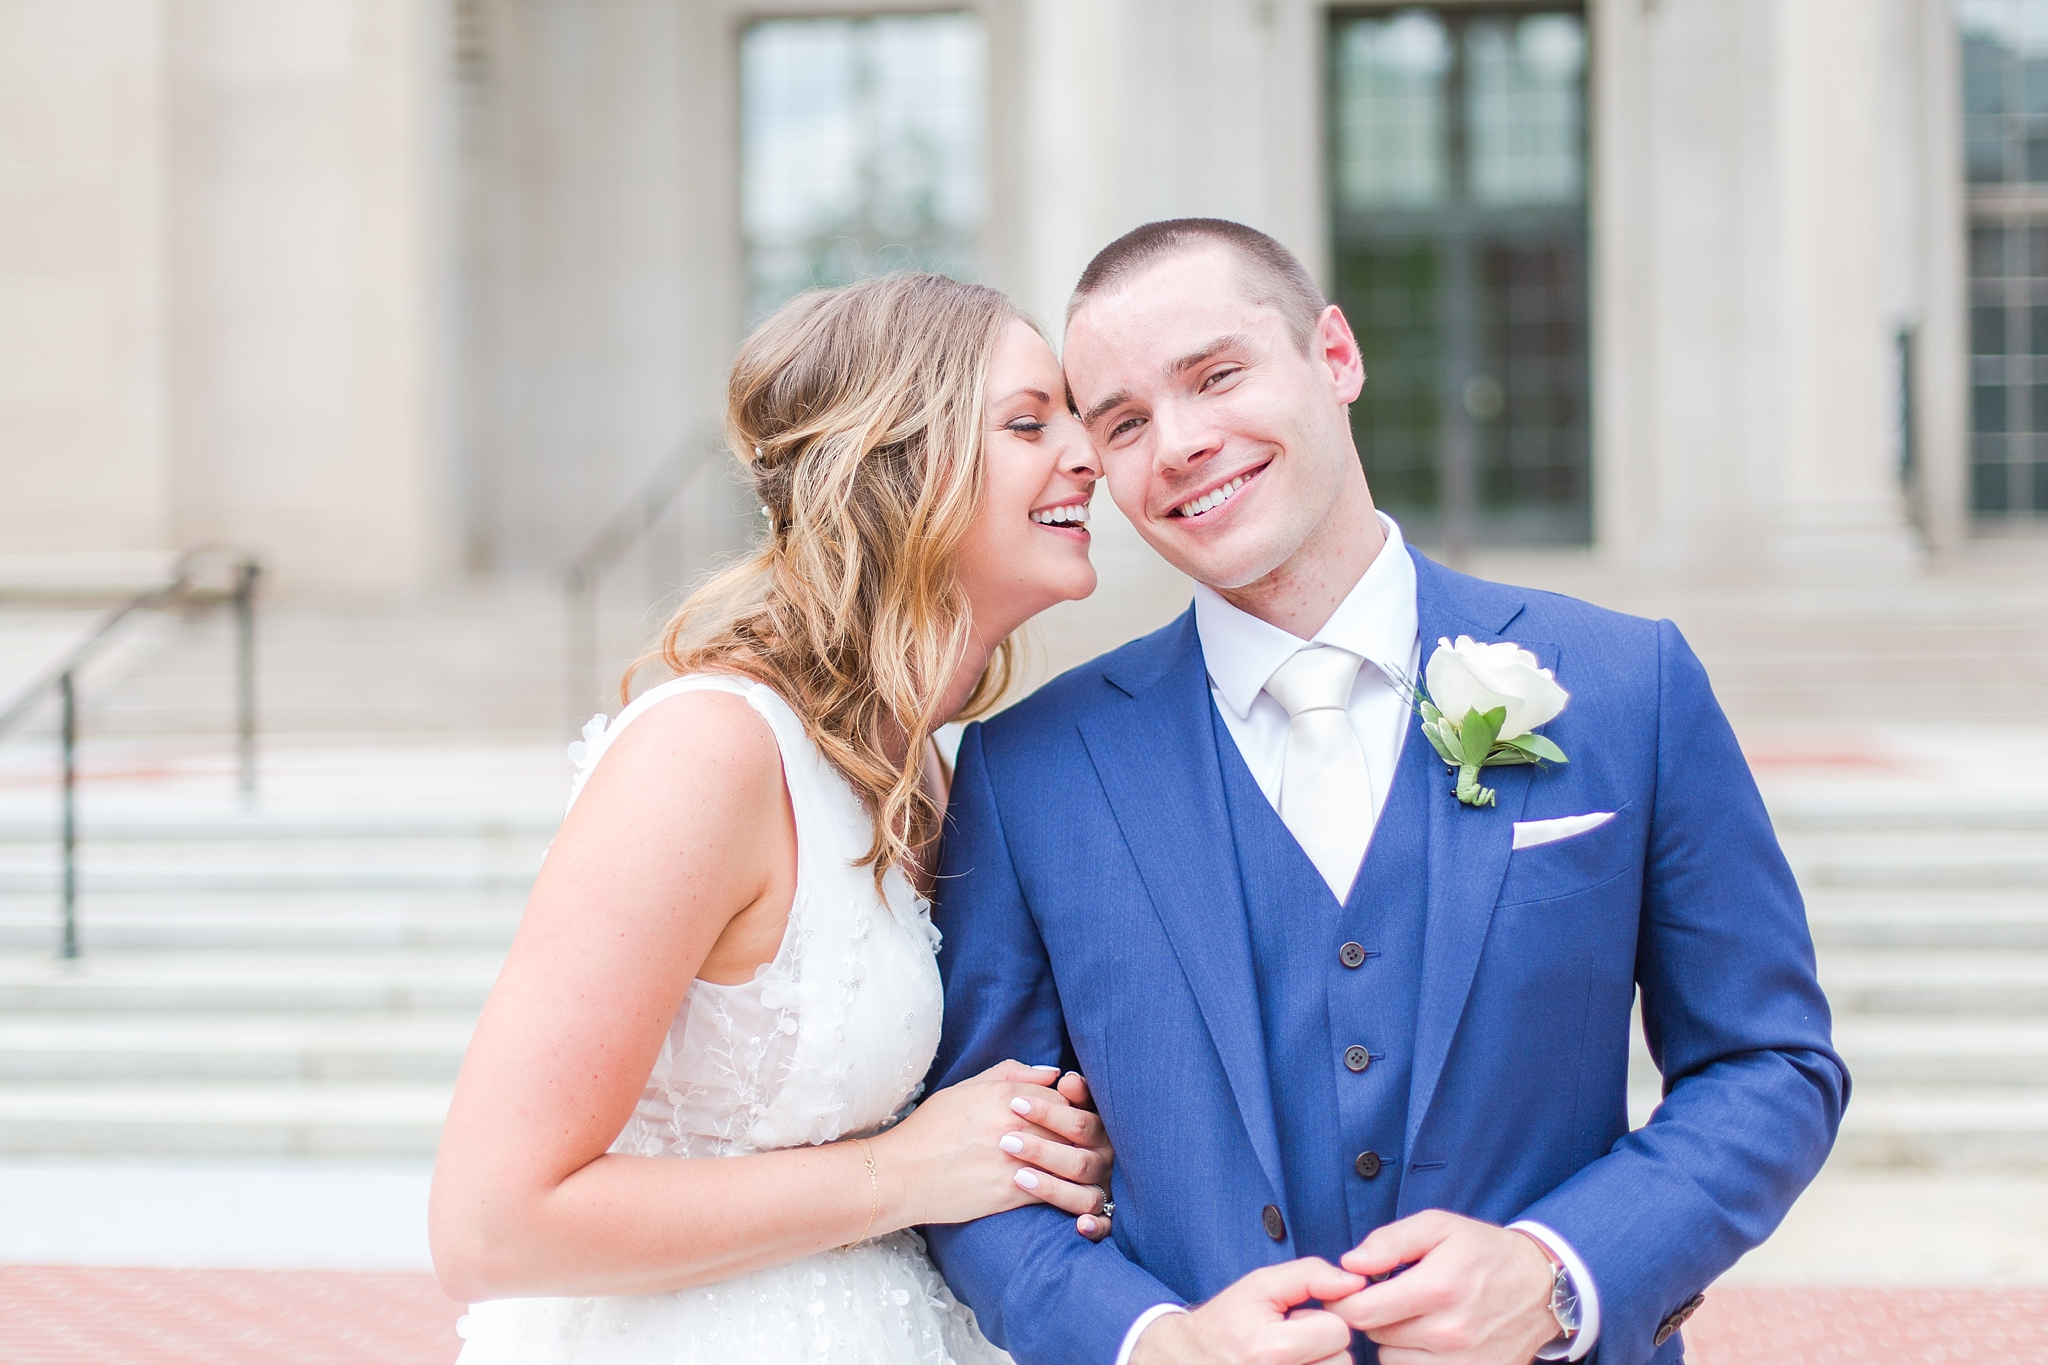 joyful-candid-laid-back-wedding-photos-in-ann-arbor-michigan-and-at-the-eagle-crest-golf-resort-by-courtney-carolyn-photography_0040.jpg